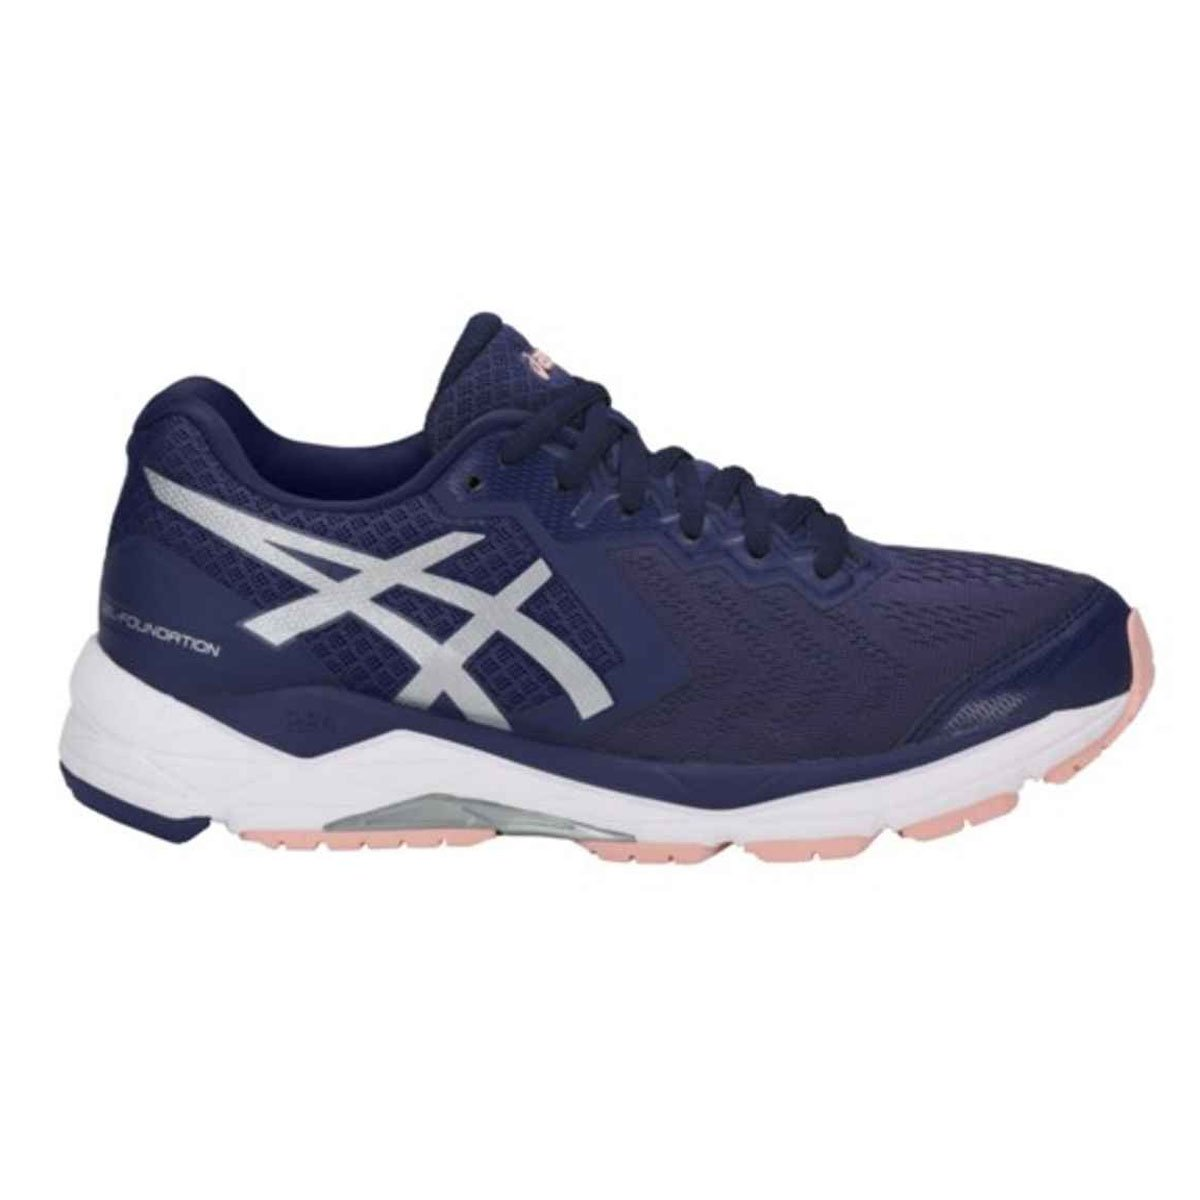 2f98c80eaeaeb ASICS GEL-Foundationr 13 Indigo Blue/Silver/Seashell Pink Women's Running  Shoes